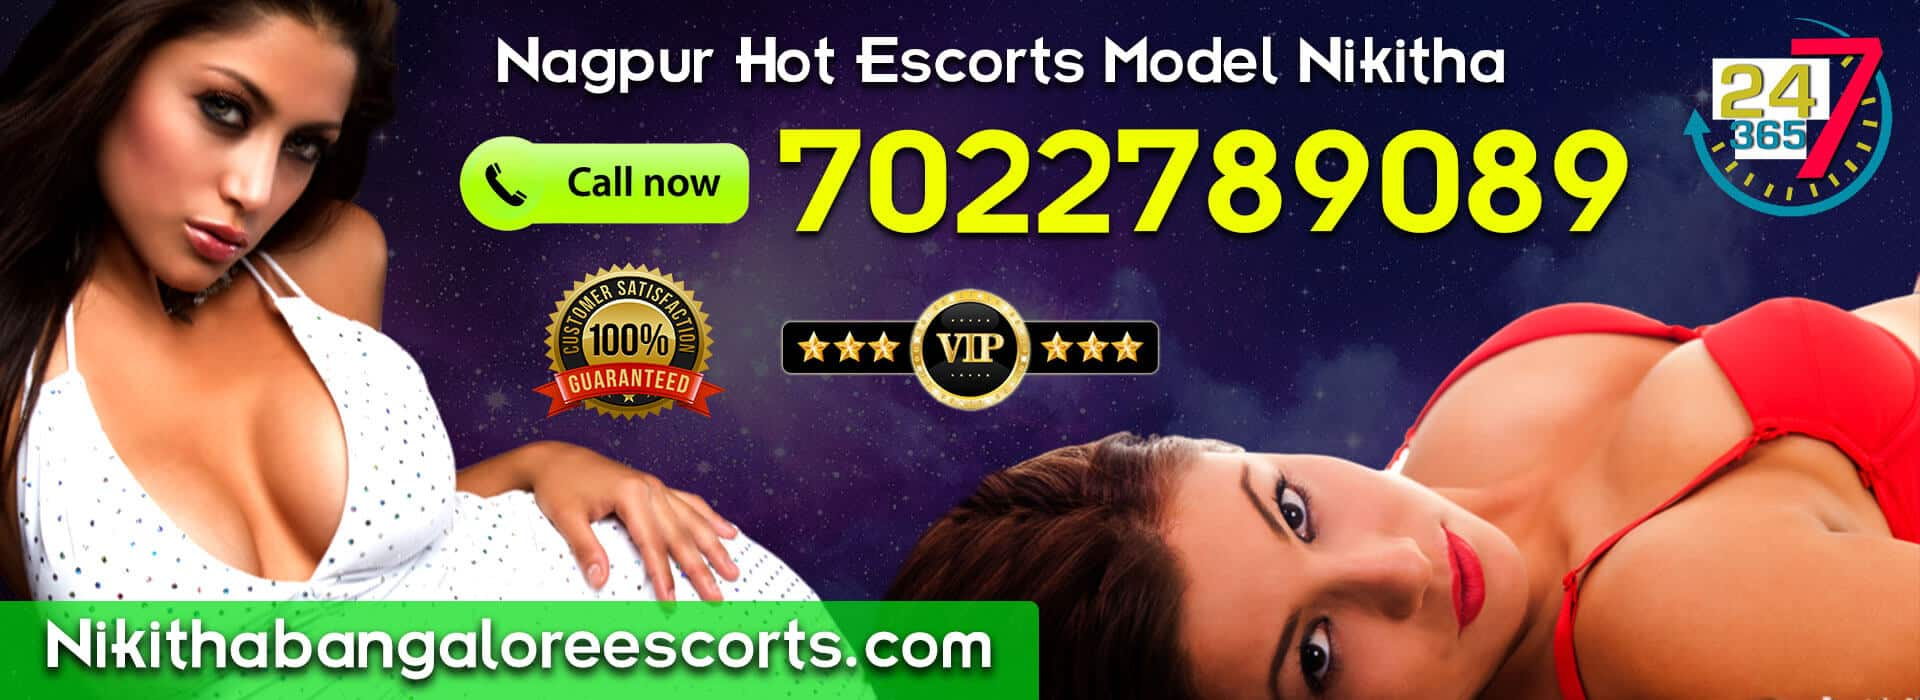 call girls in nagpur